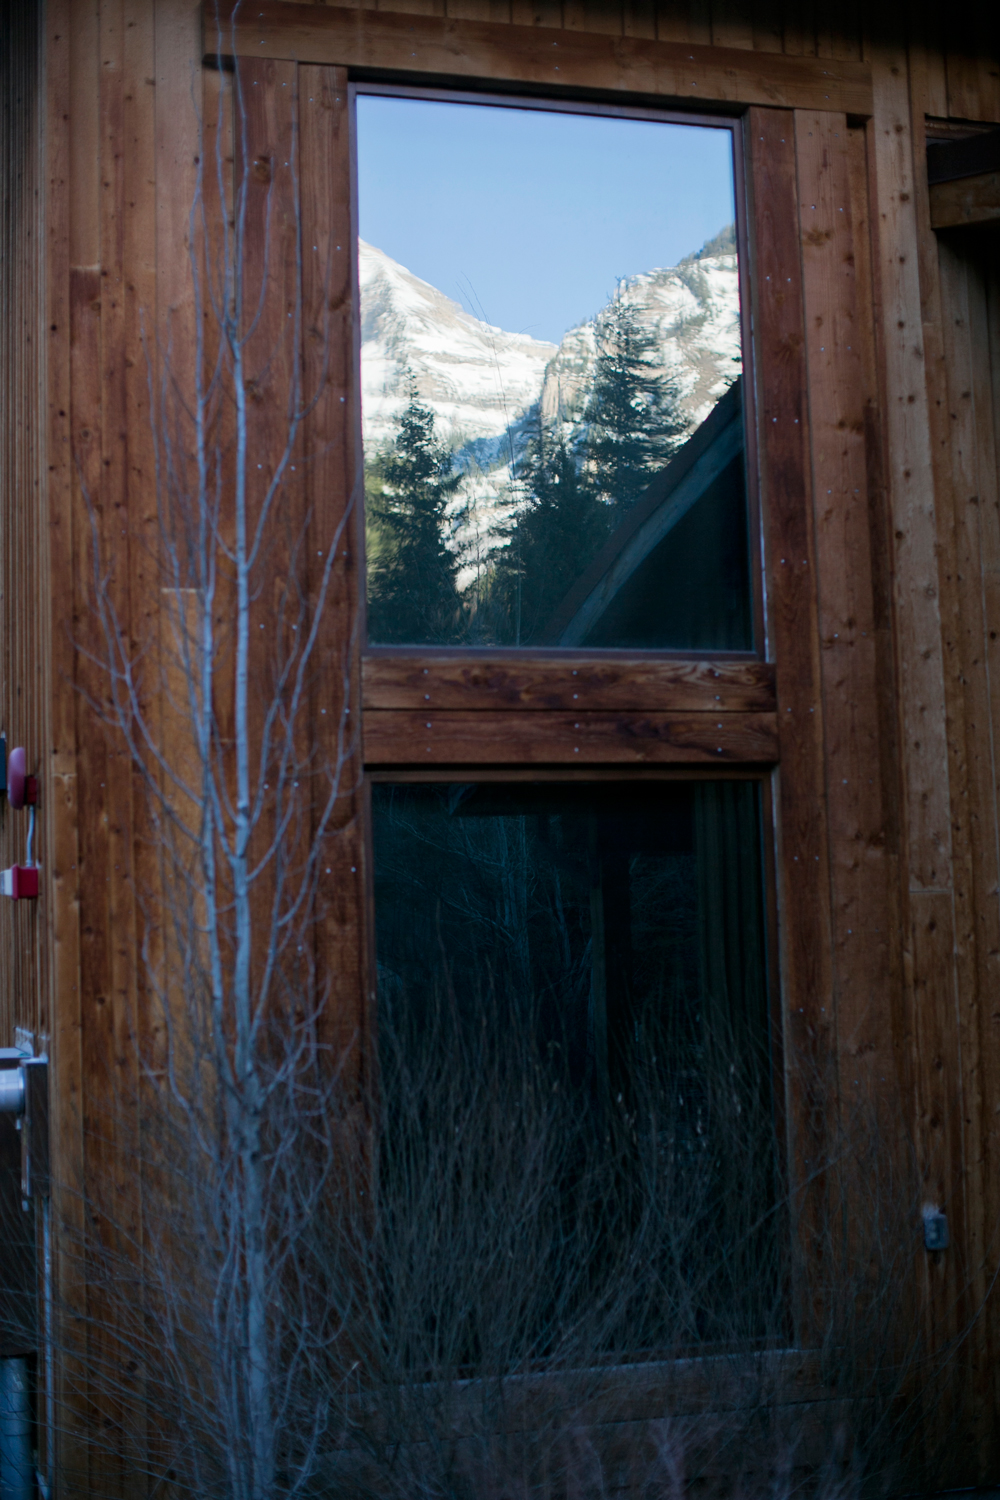 The mountains reflected in a window